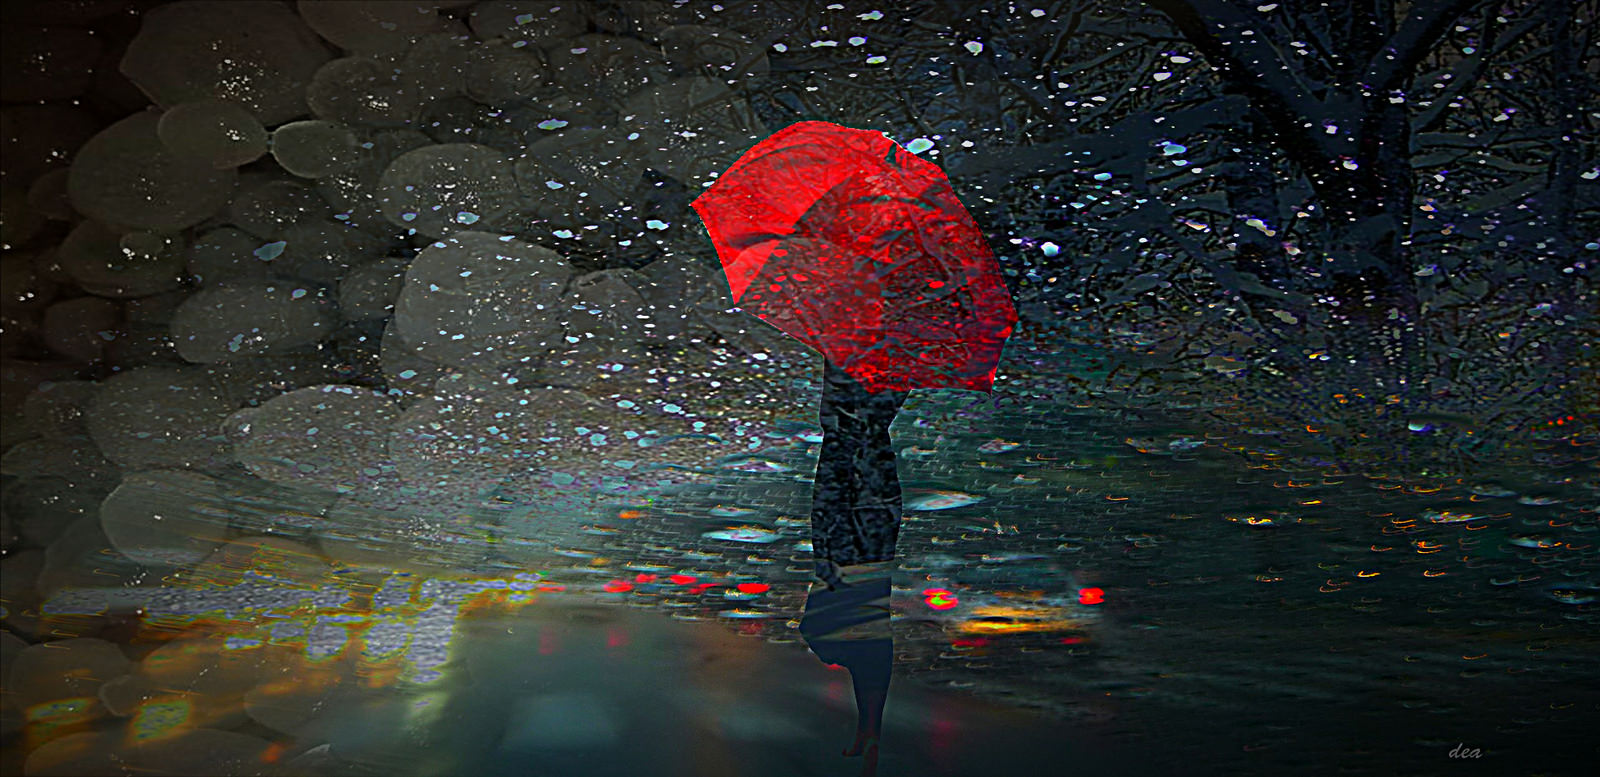 14 Creative and Inspiring Photographs That Were Taken in the Rain